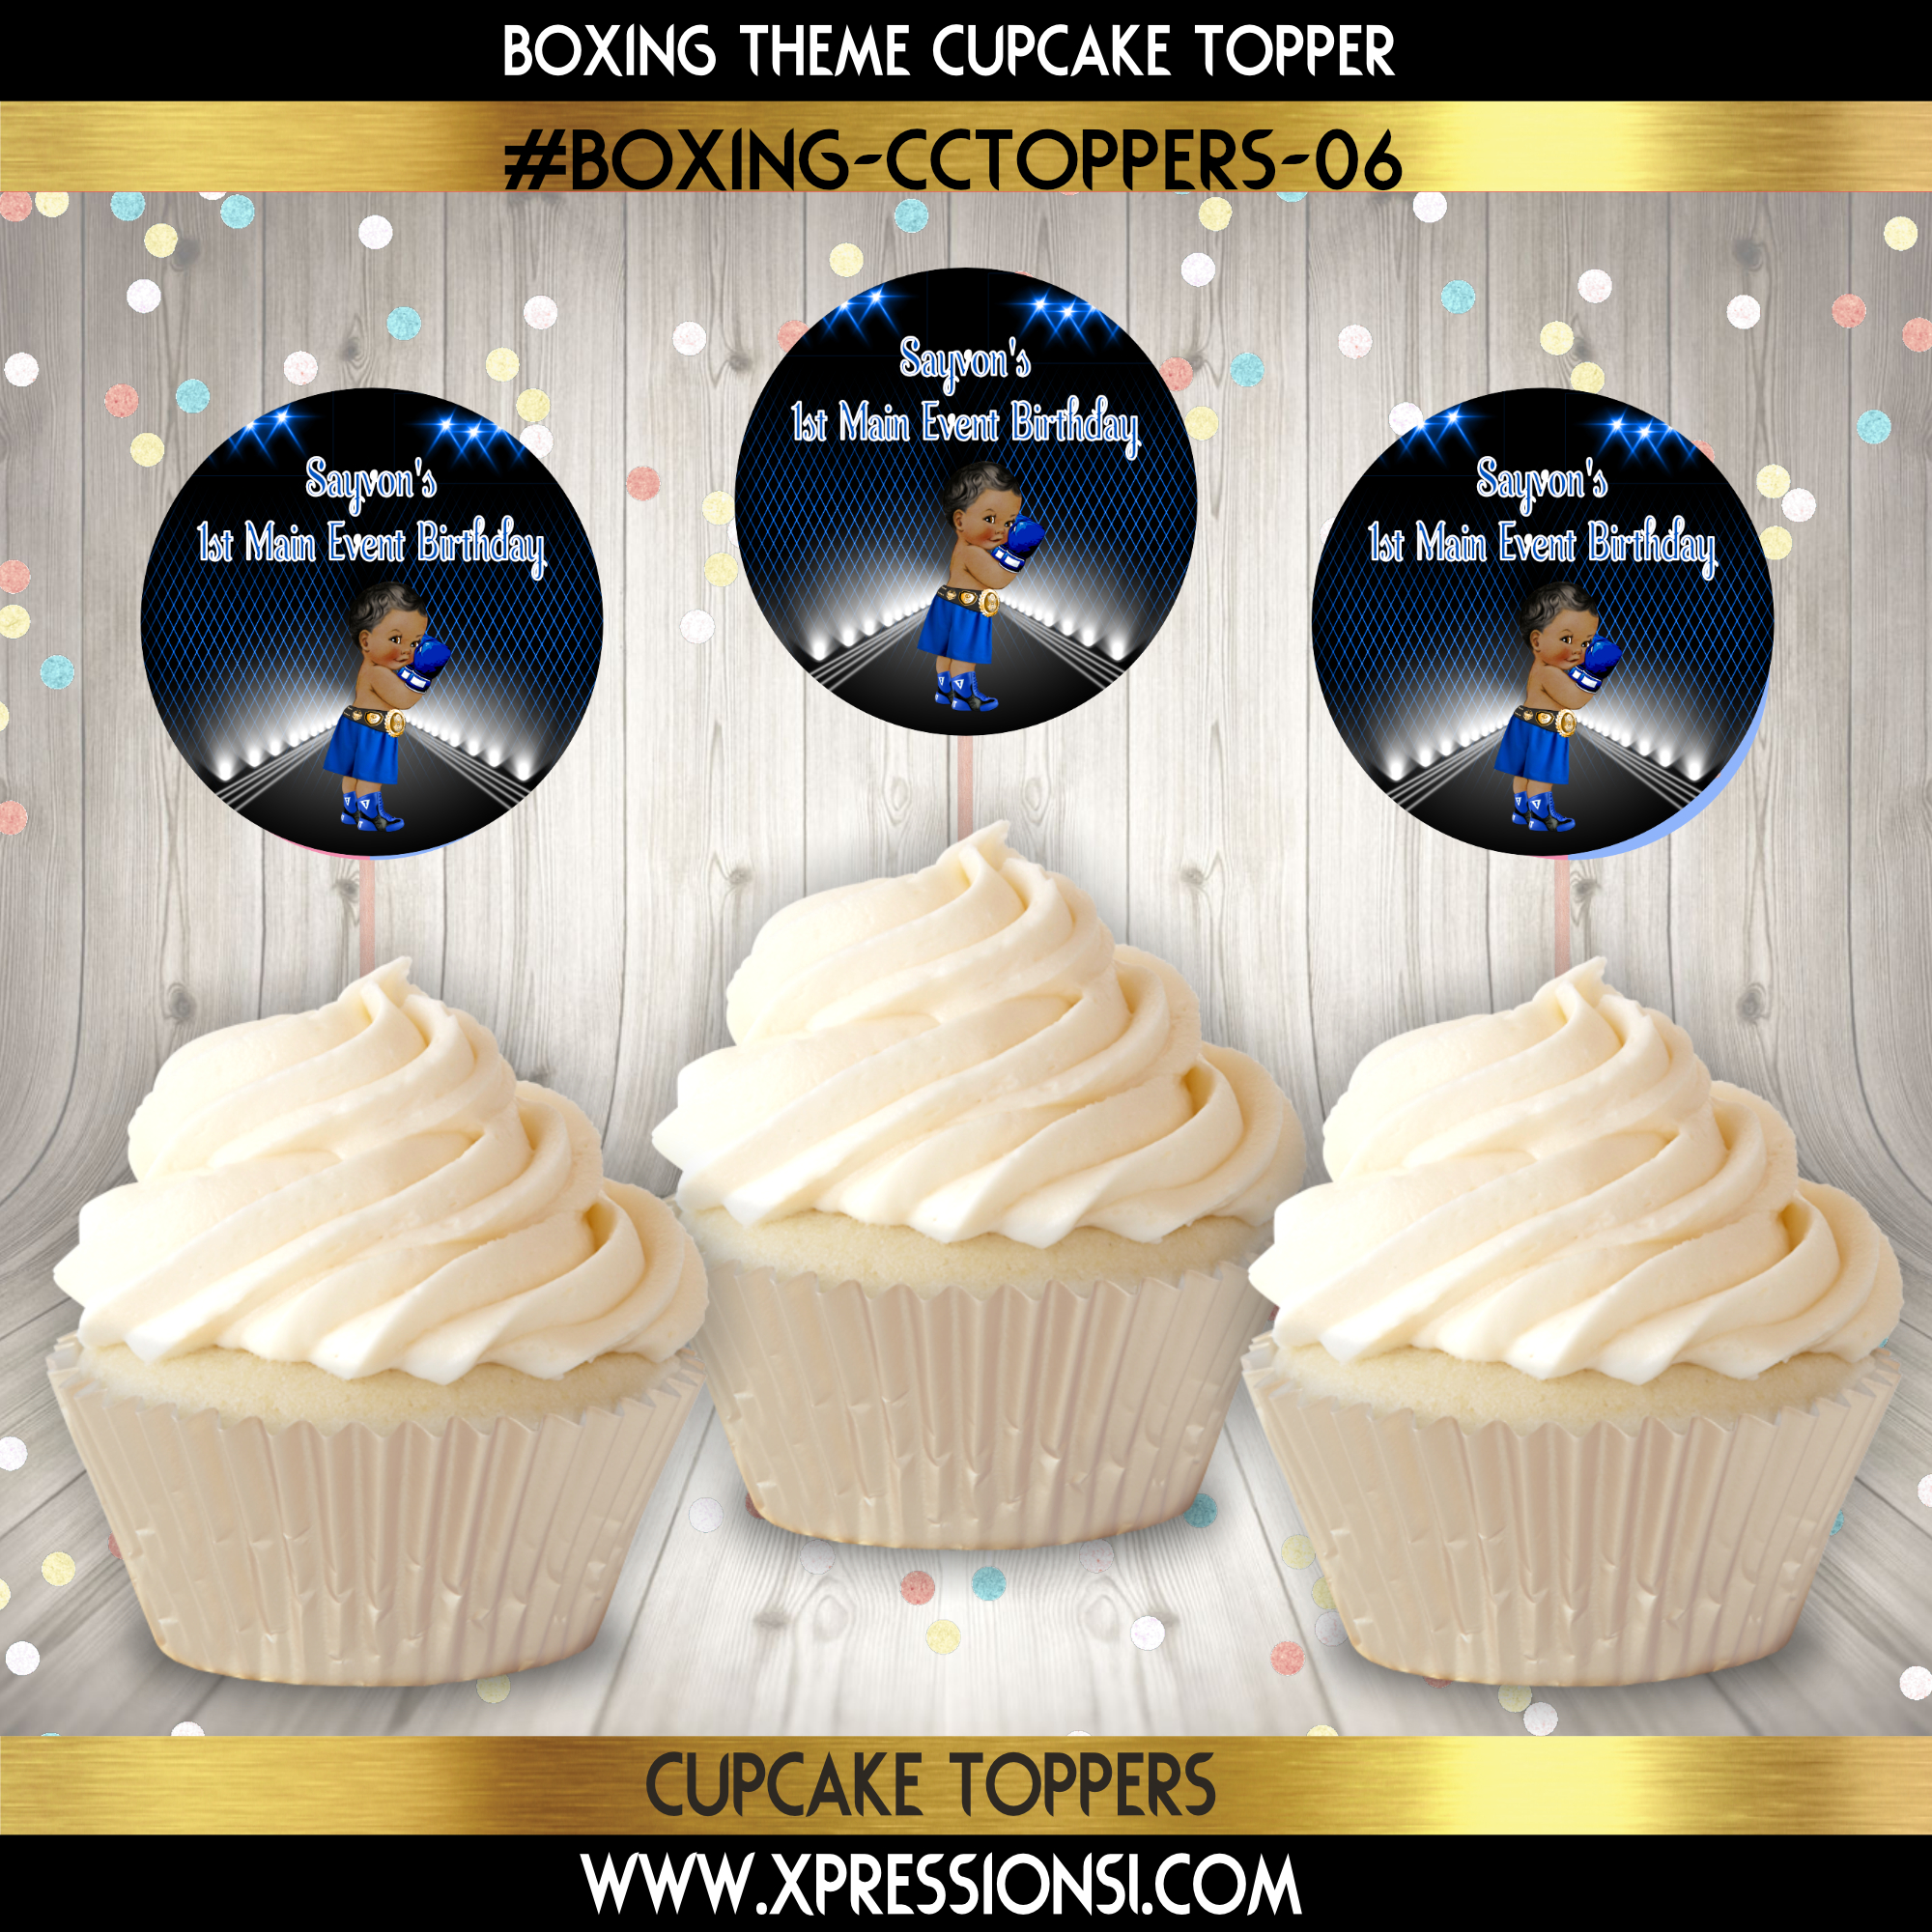 I'm a Fighter Boxing Cupcake Topper